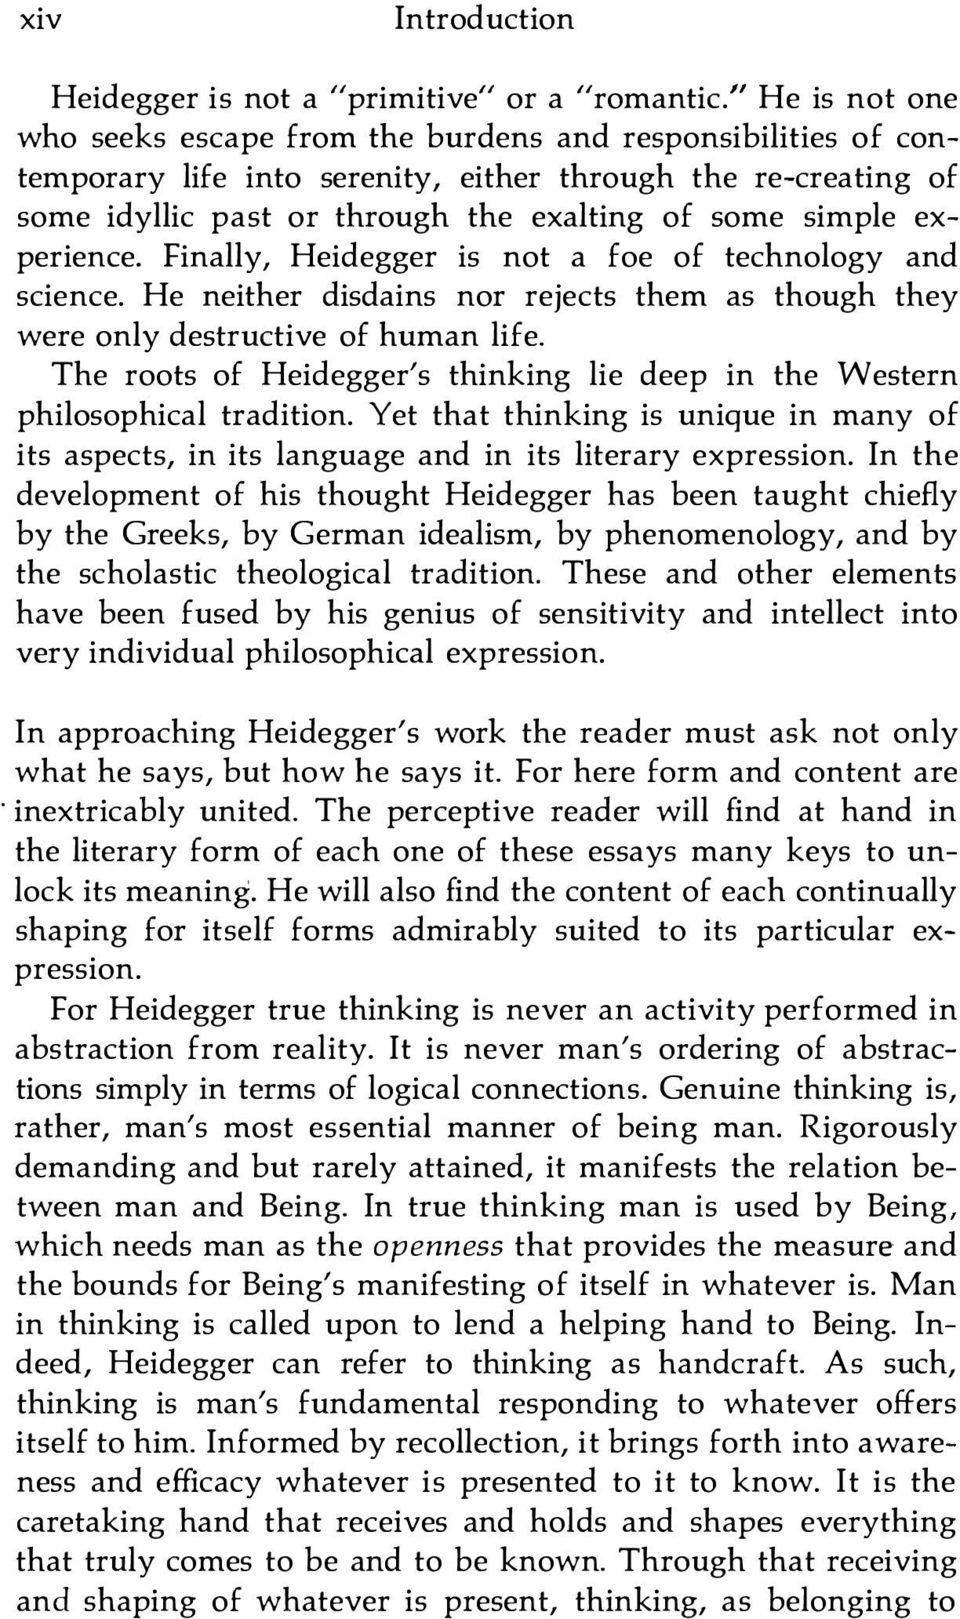 experience. Finally, Heidegger is not a foe of technology and science. He neither disdains nor rejects them as though they were only destructive of human life.